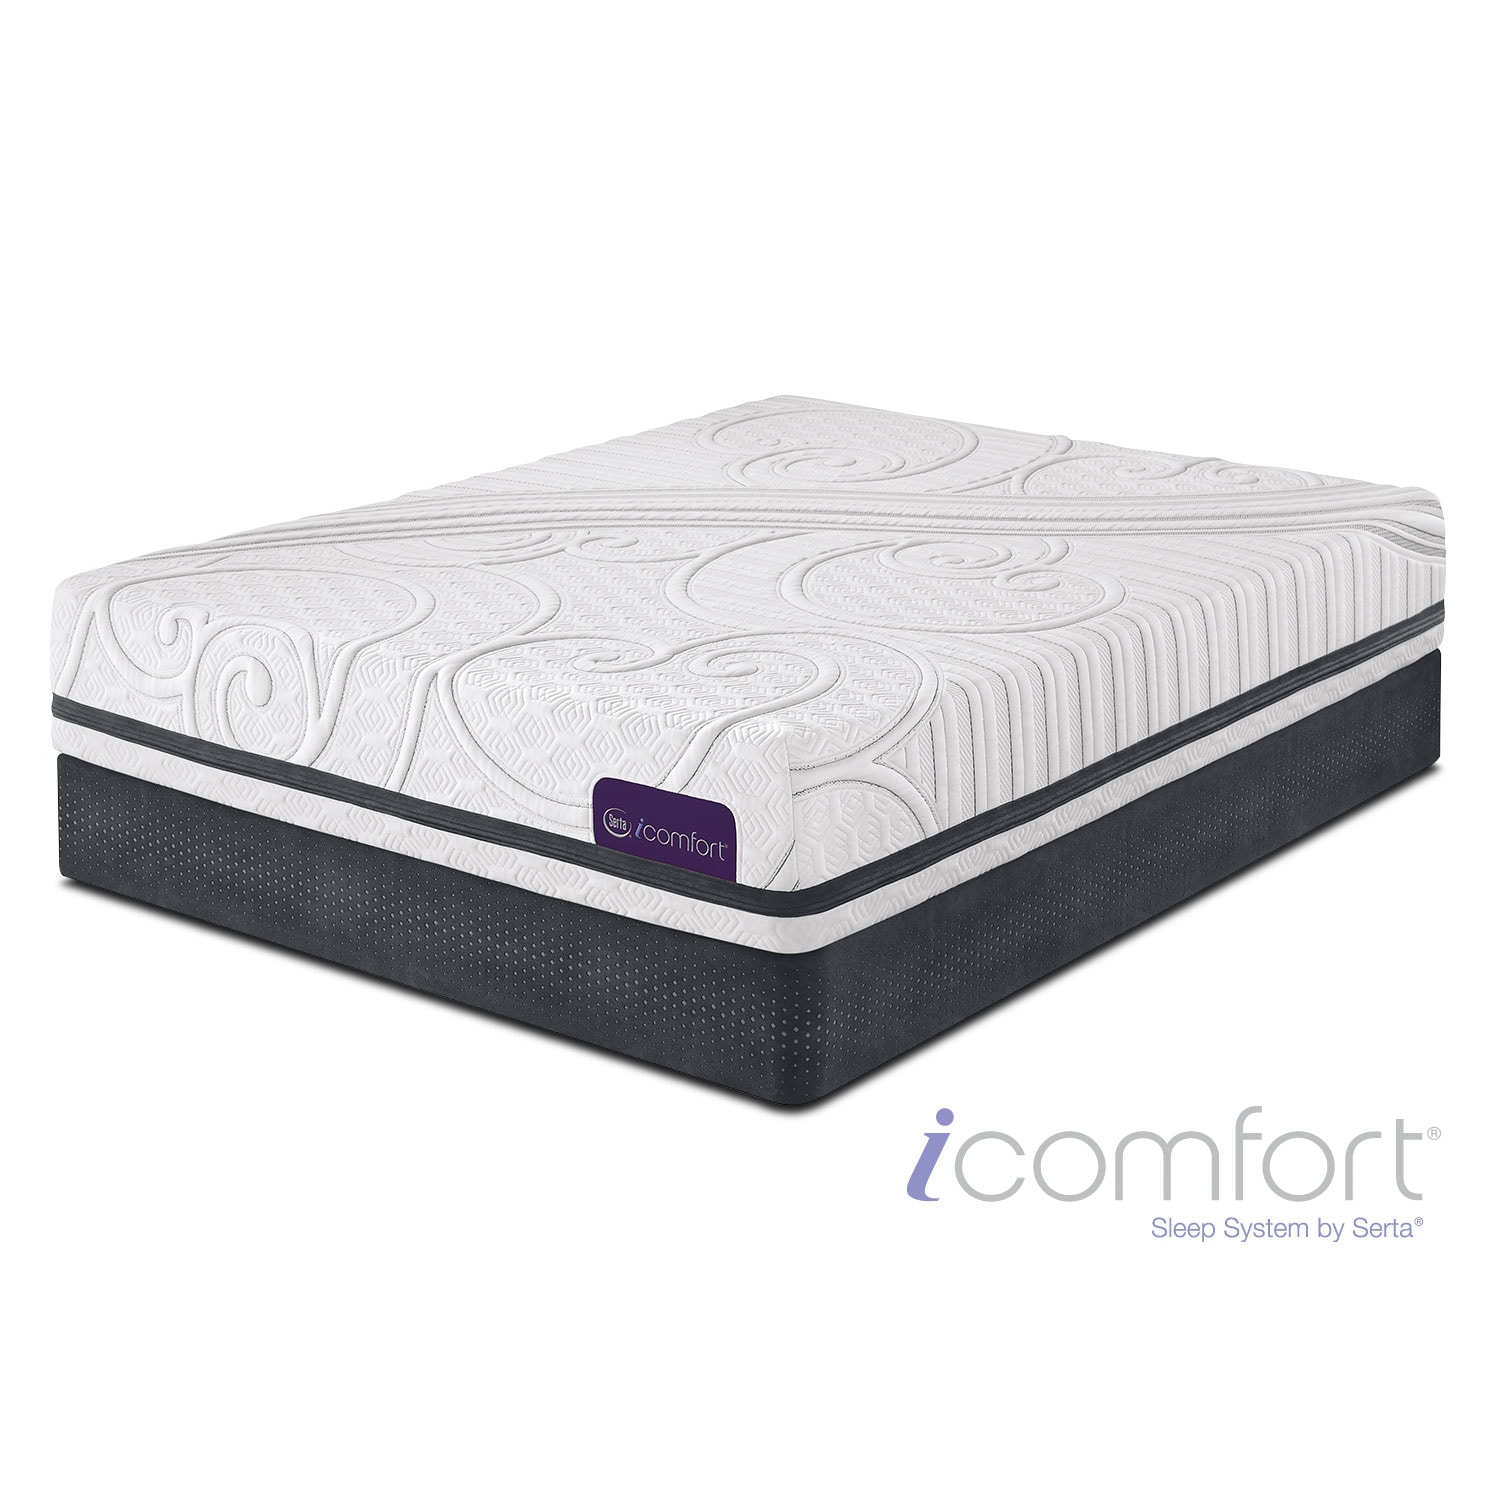 Mattresses and Bedding - Savant III Plush King Mattress/Split Foundation Set